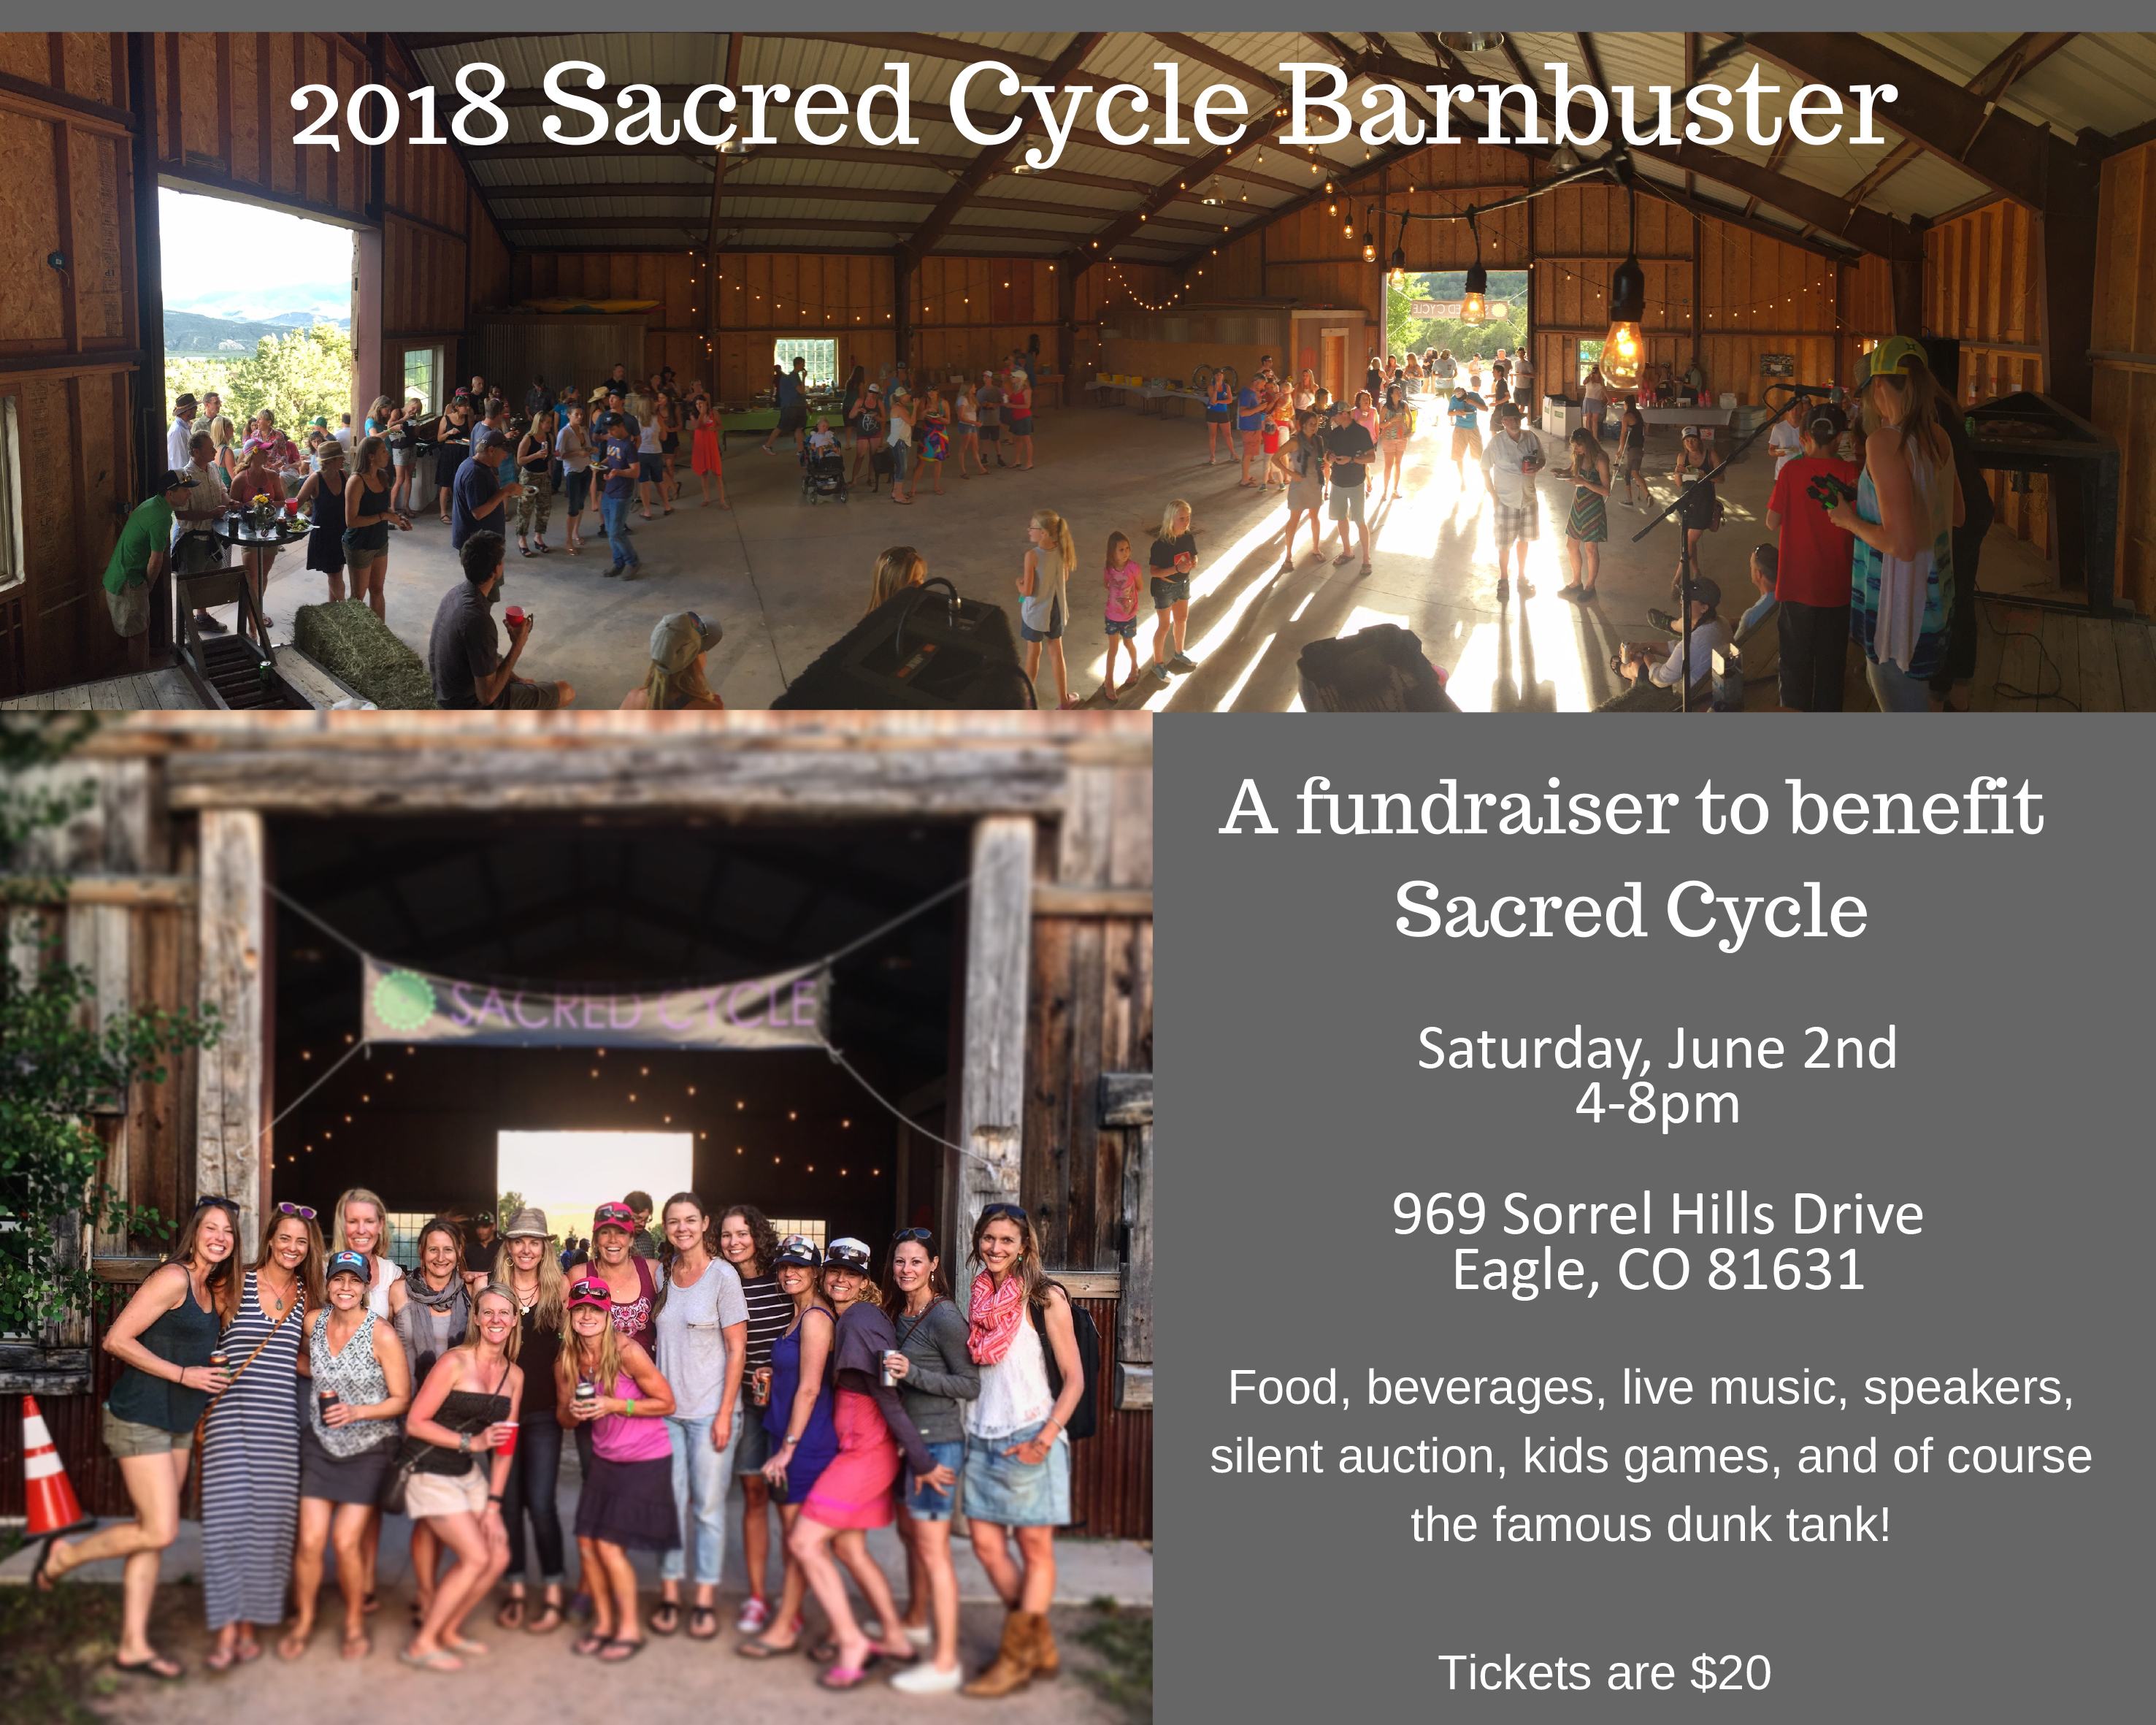 Sacred Cycle Barnbuster 2018